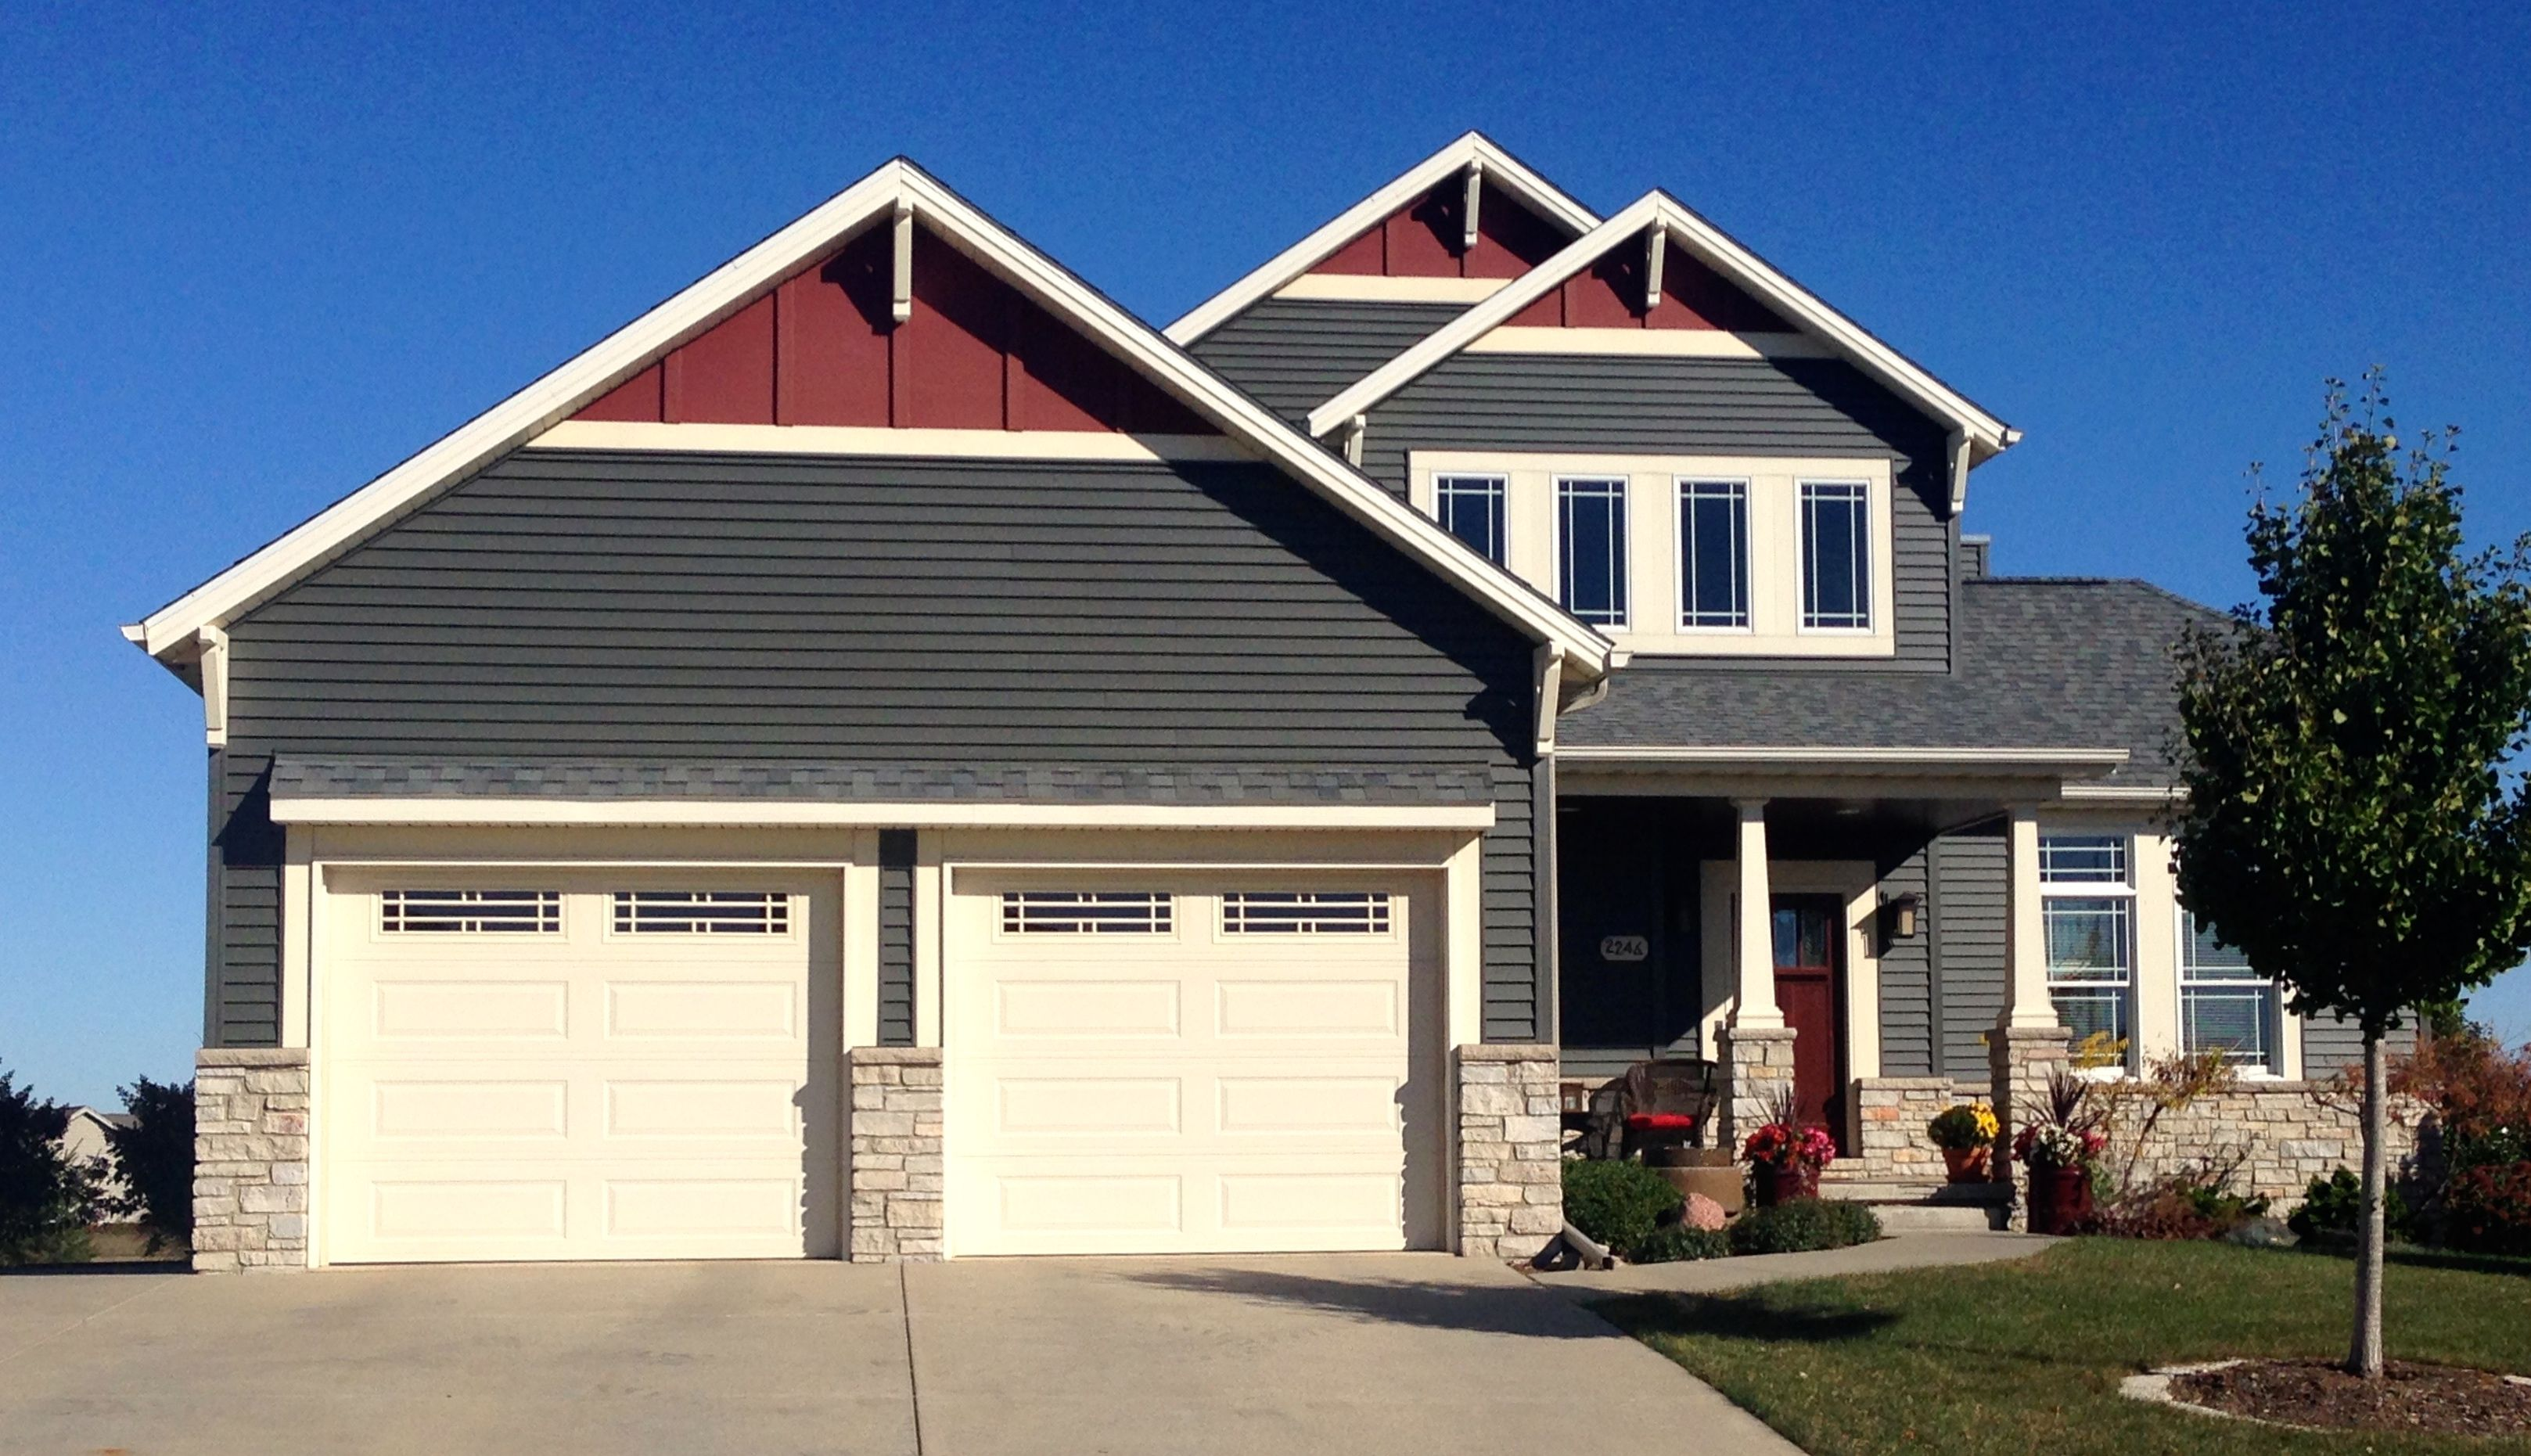 Mastic Quest Siding In Misty Shadow Red Decorative Gables